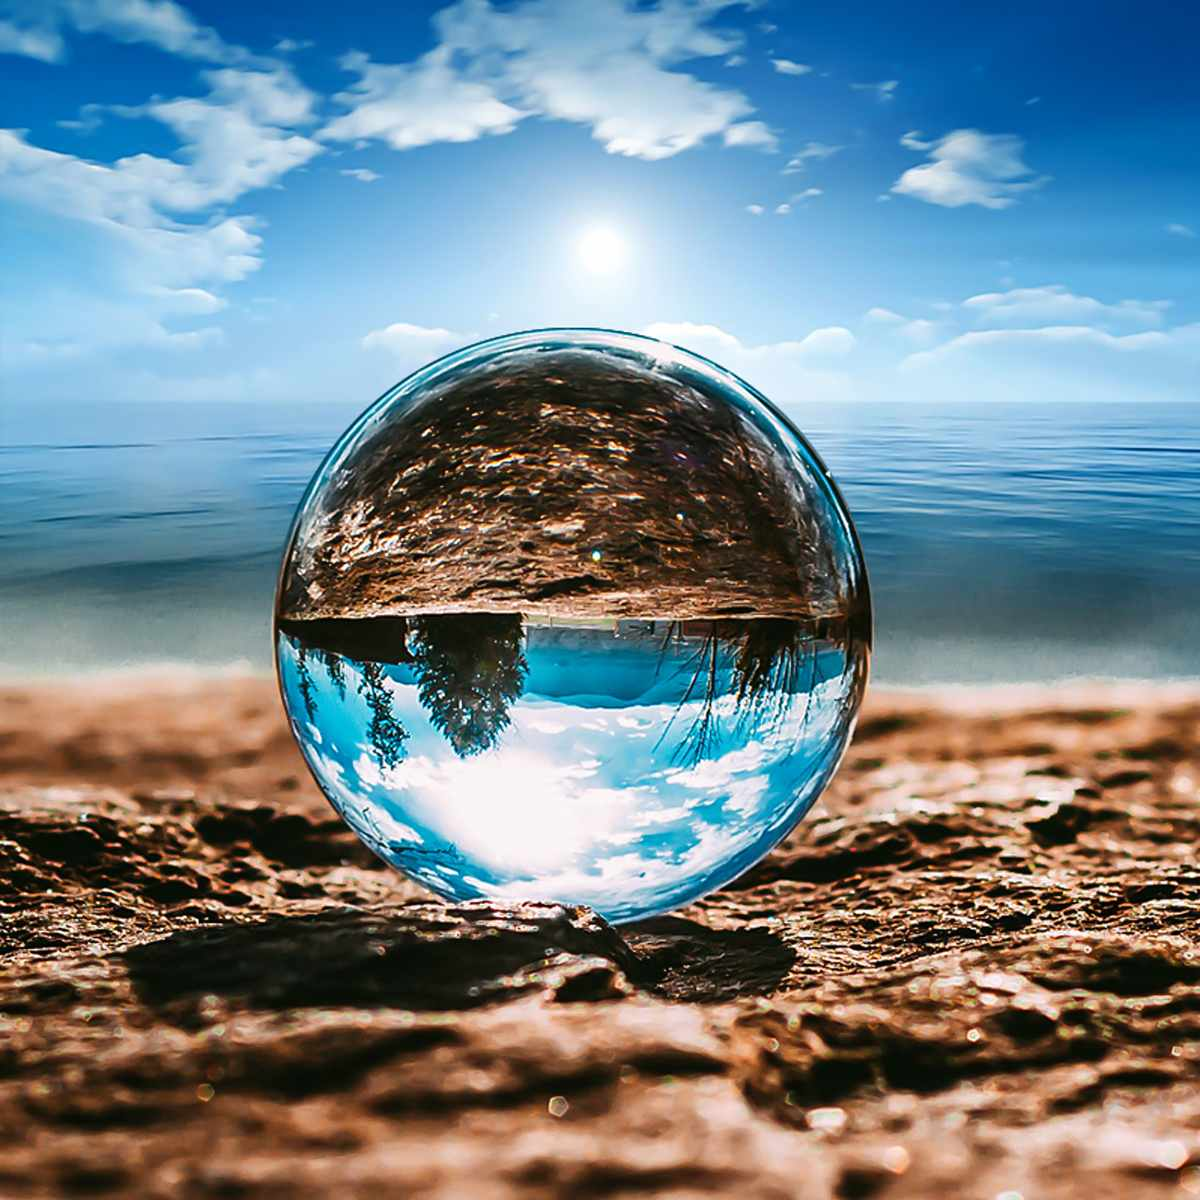 Glass Crystal Ball 100mm Diameter Sphere Photography Photo Props Home Decoration Ornament Accessories Gifts